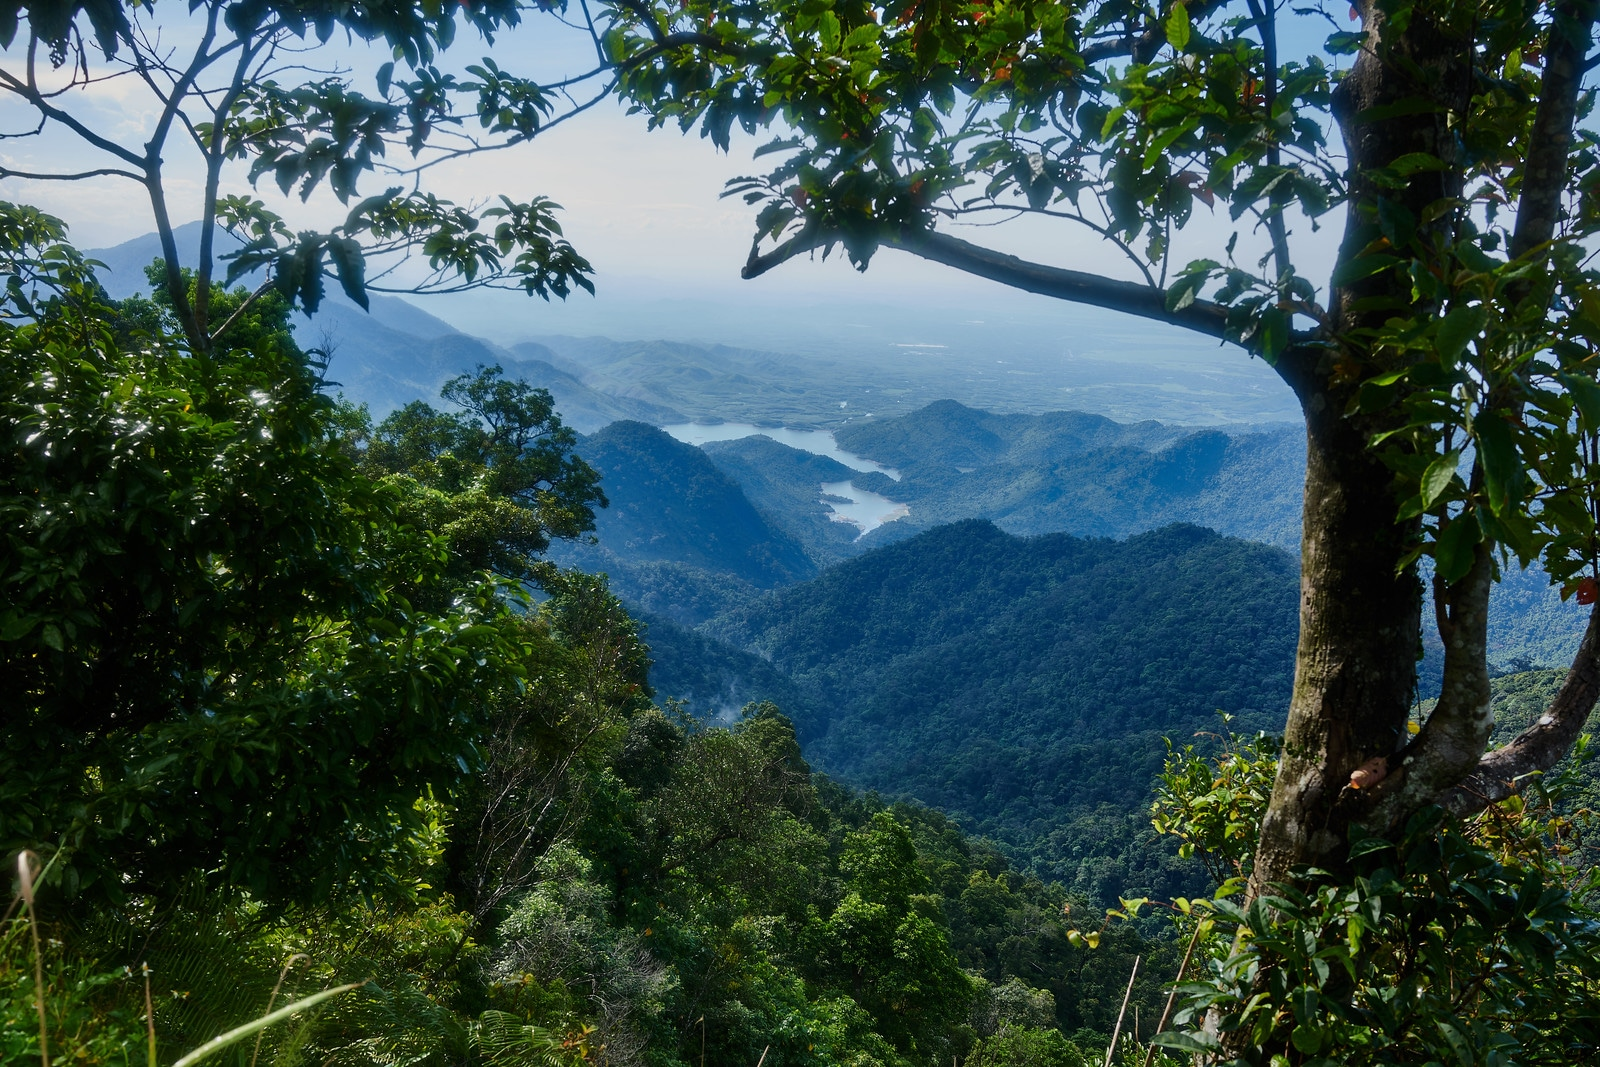 Overview of Bach Ma National Park Vietnam